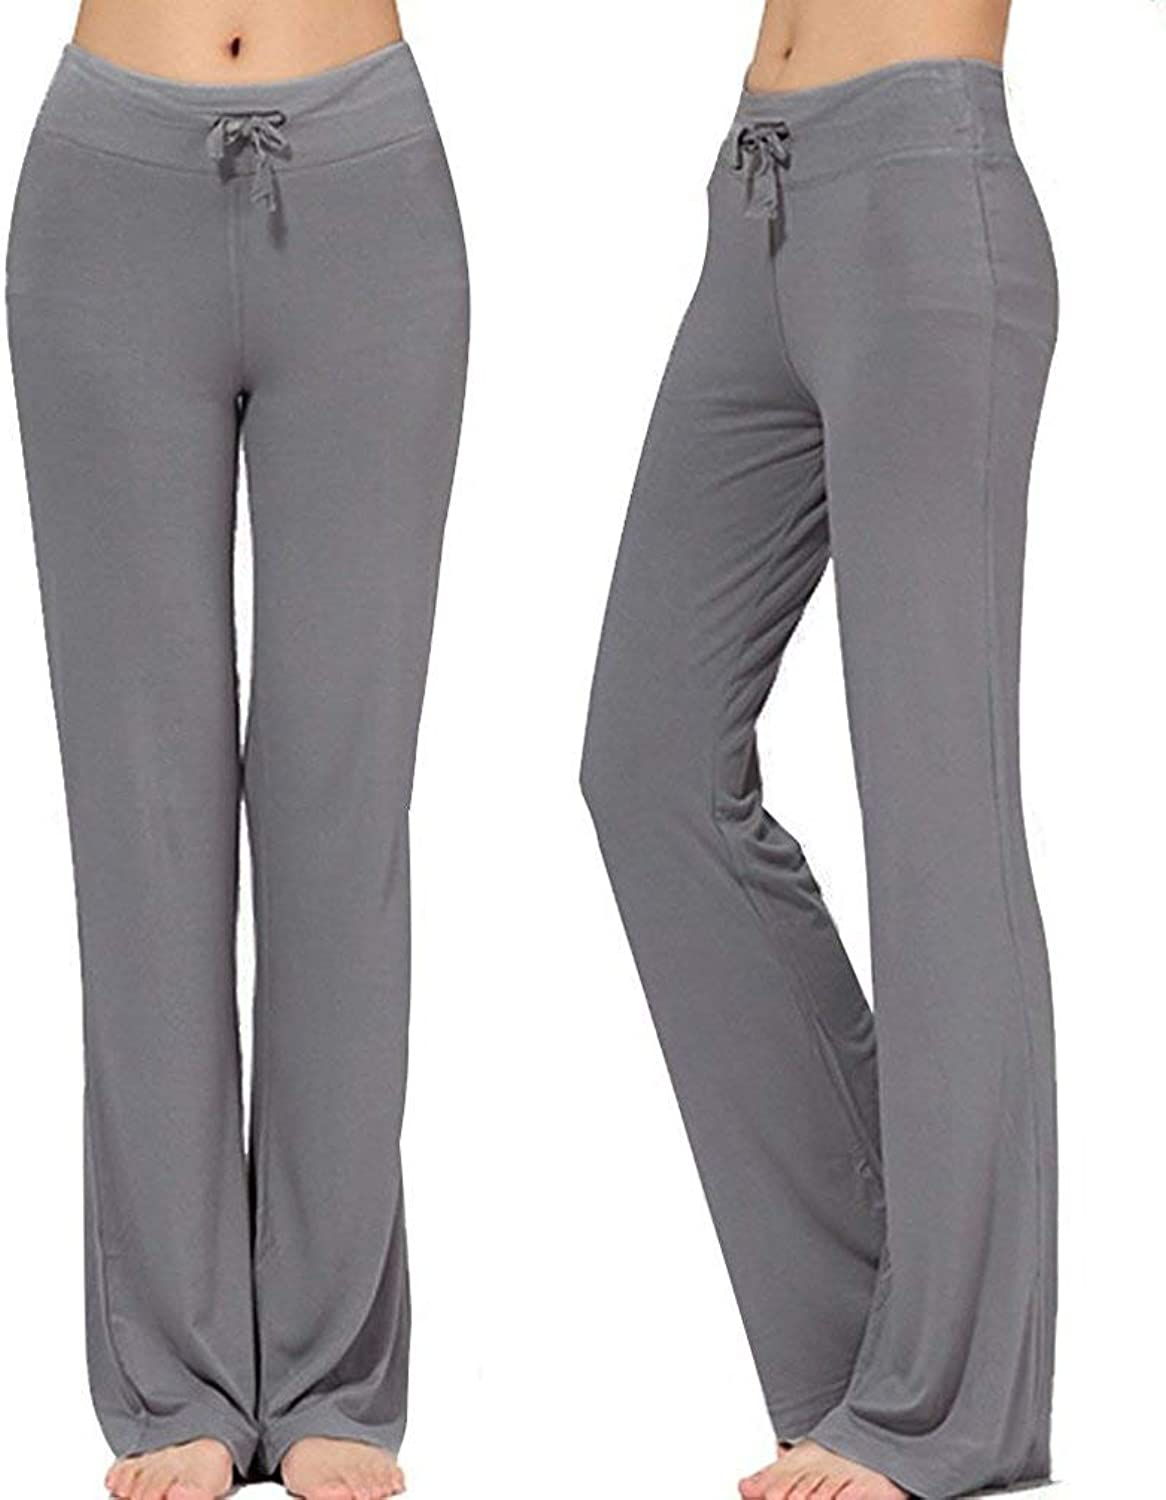 NB Women's Long Modal Comfy Drawstring Trousers Loose StraightLeg for Yoga Running Sporting